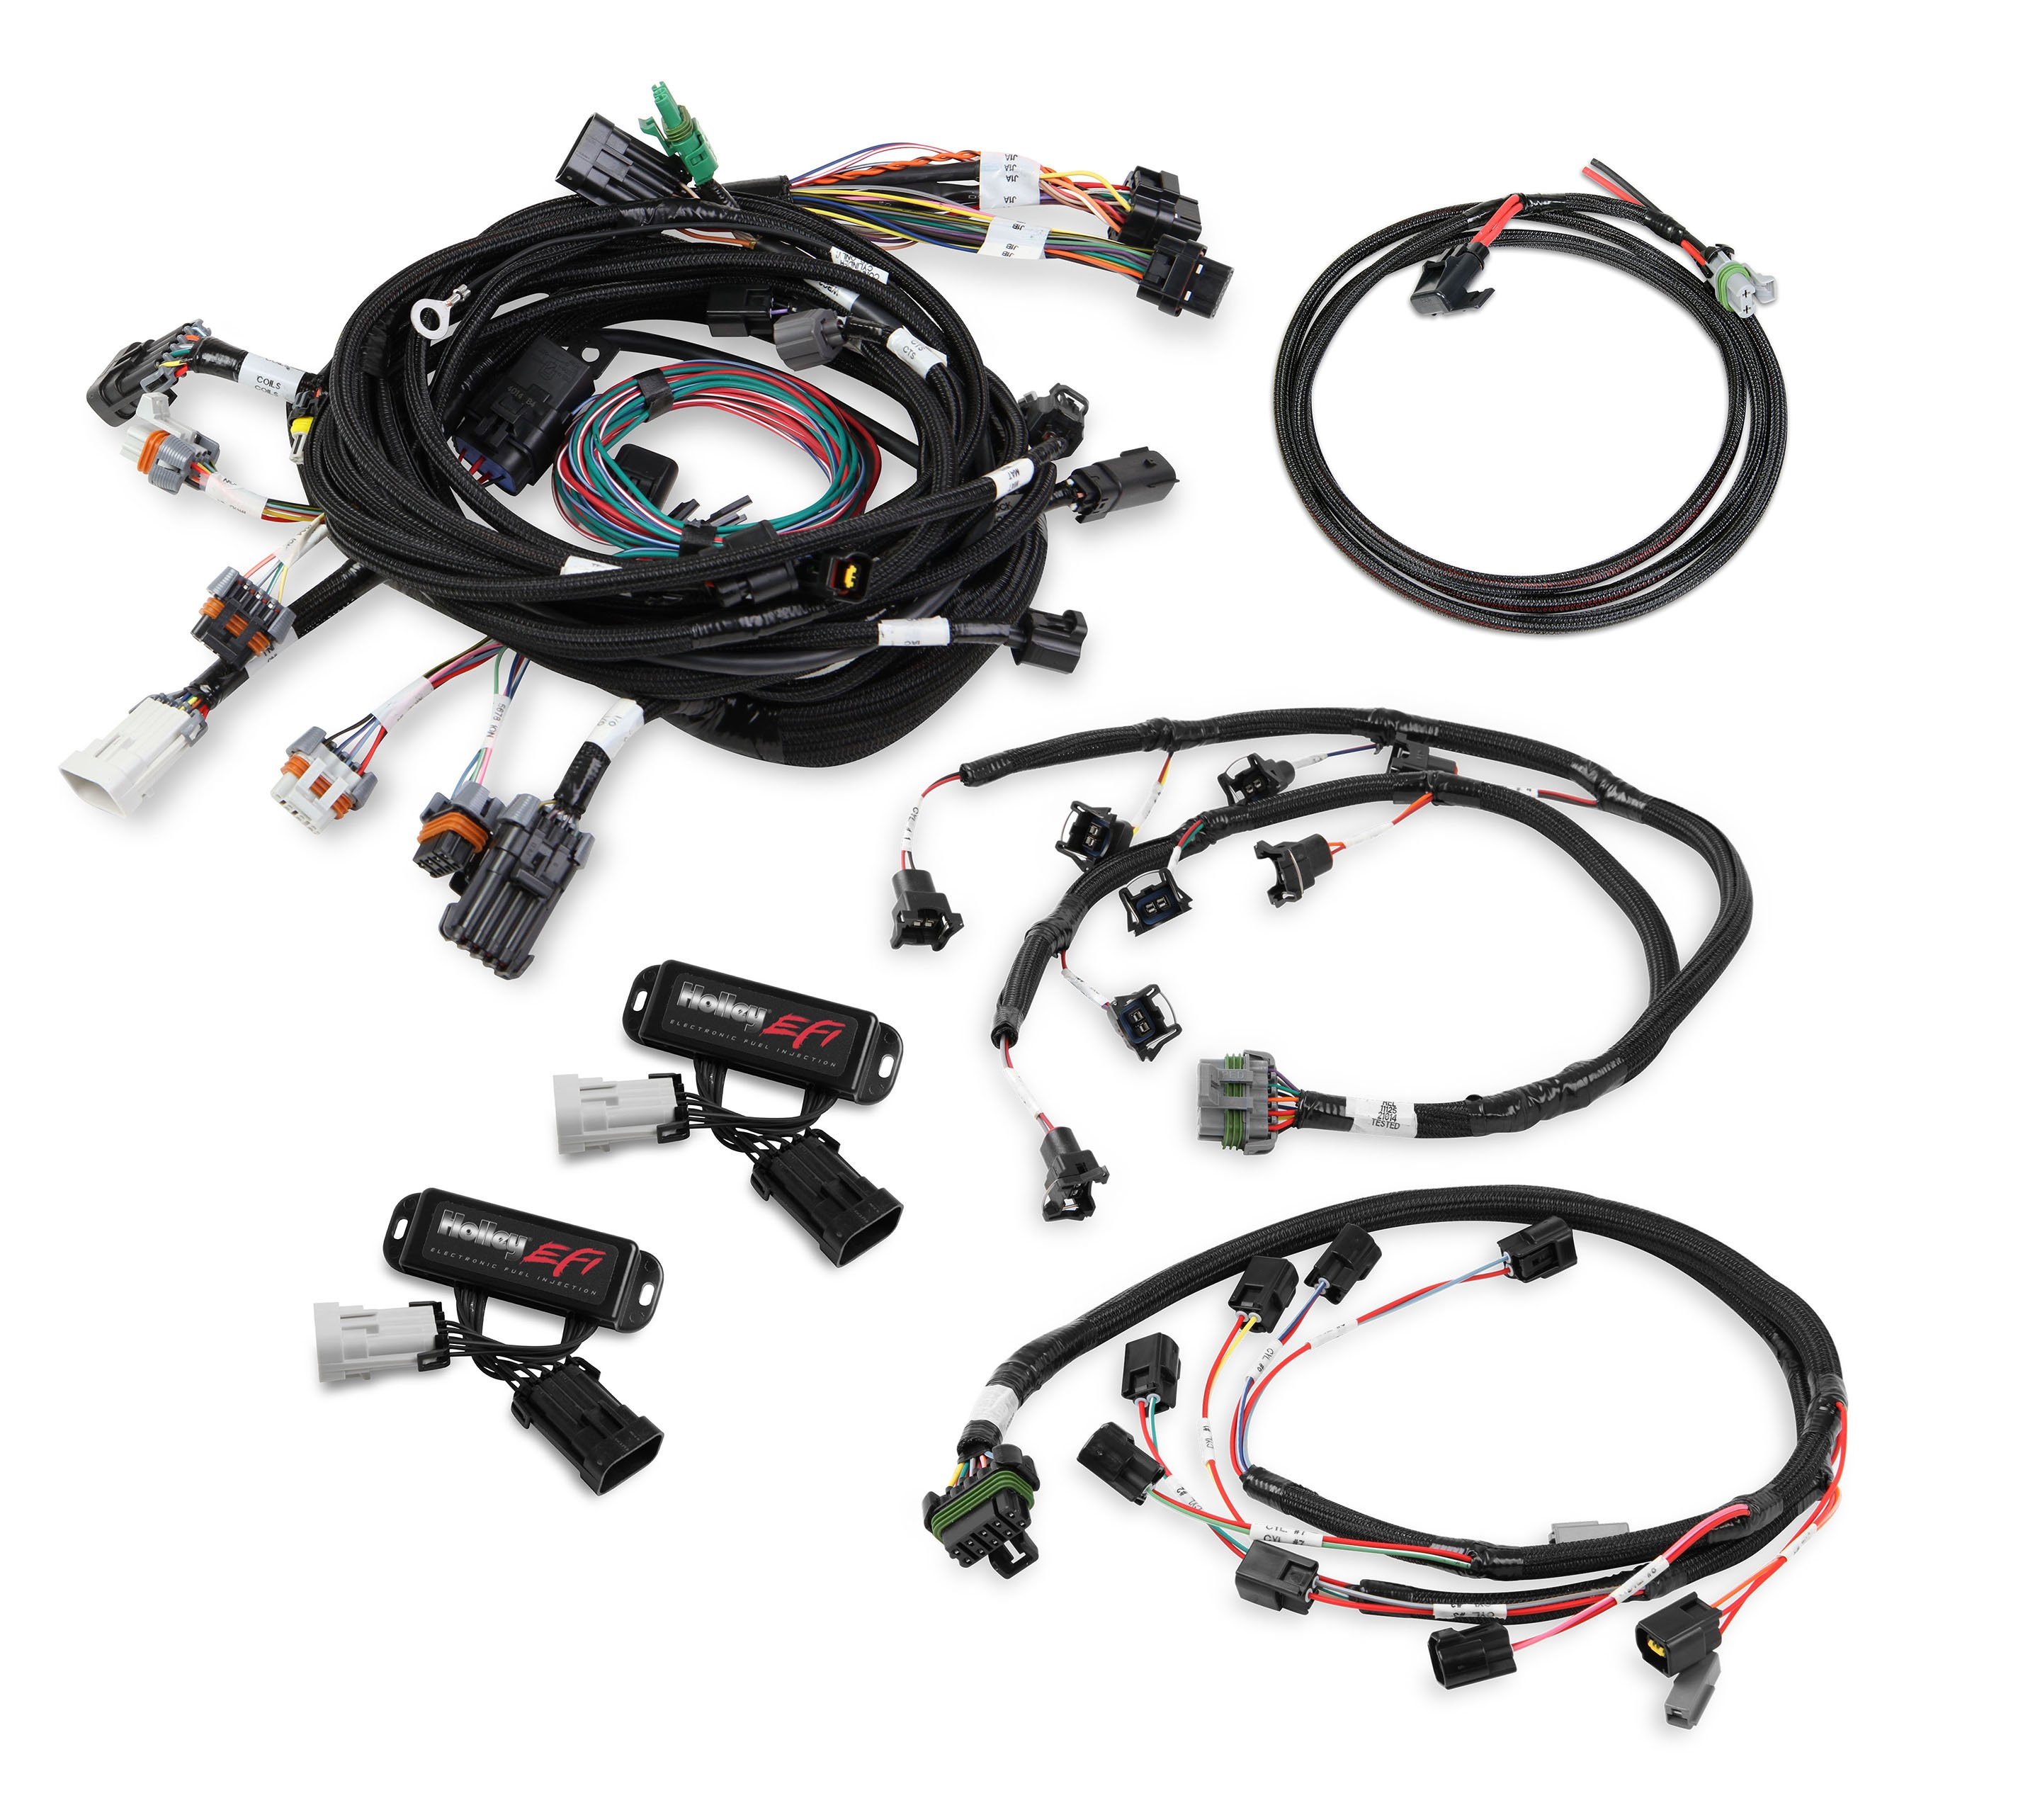 Holley Efi 558 506 Ford Modular 4 Valve Efi Harness Kit